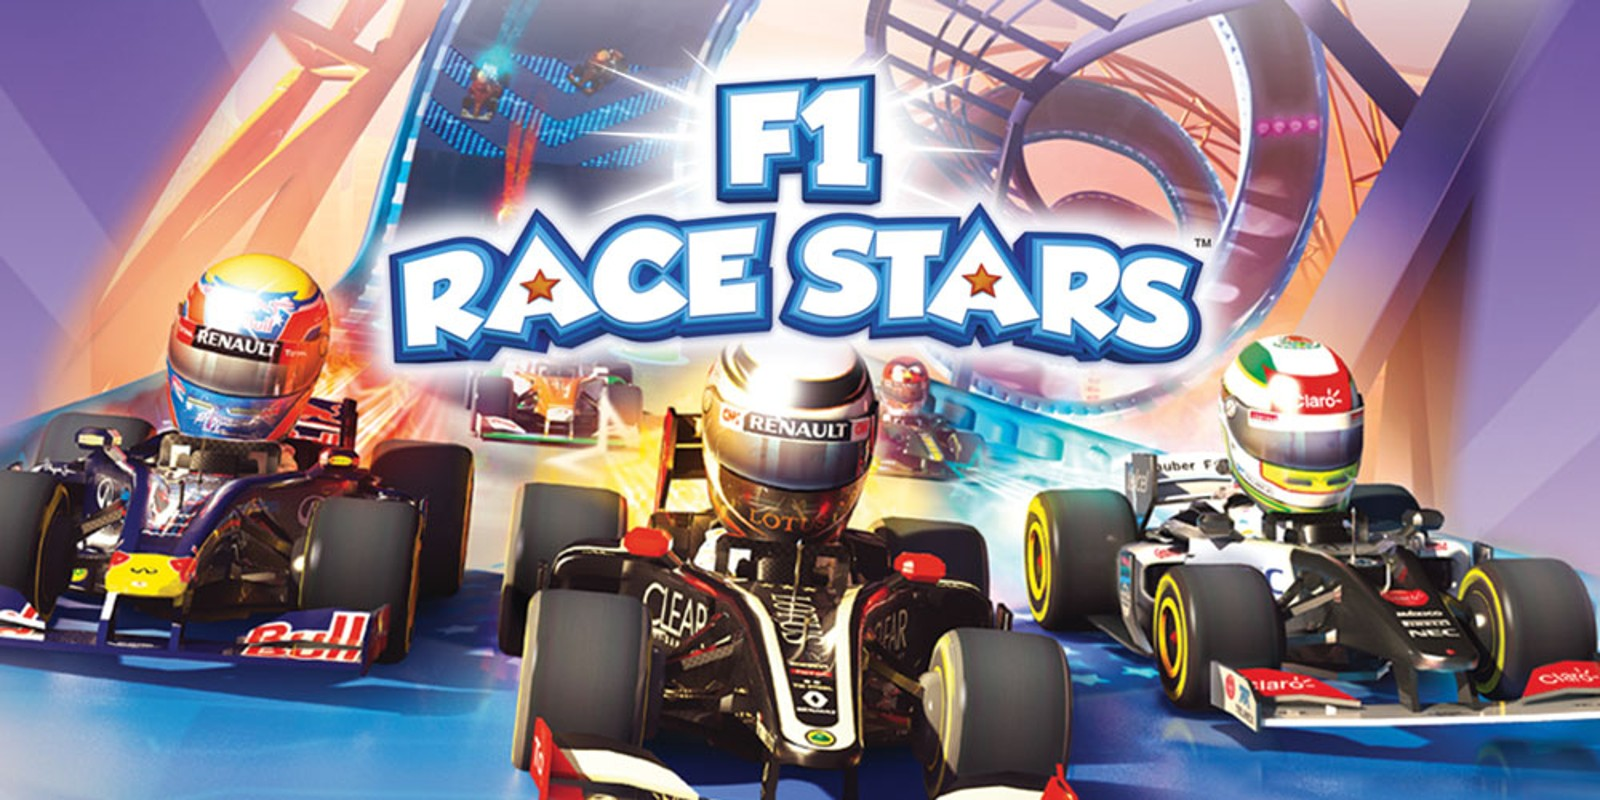 f1 race stars powered up edition wii u games nintendo. Black Bedroom Furniture Sets. Home Design Ideas